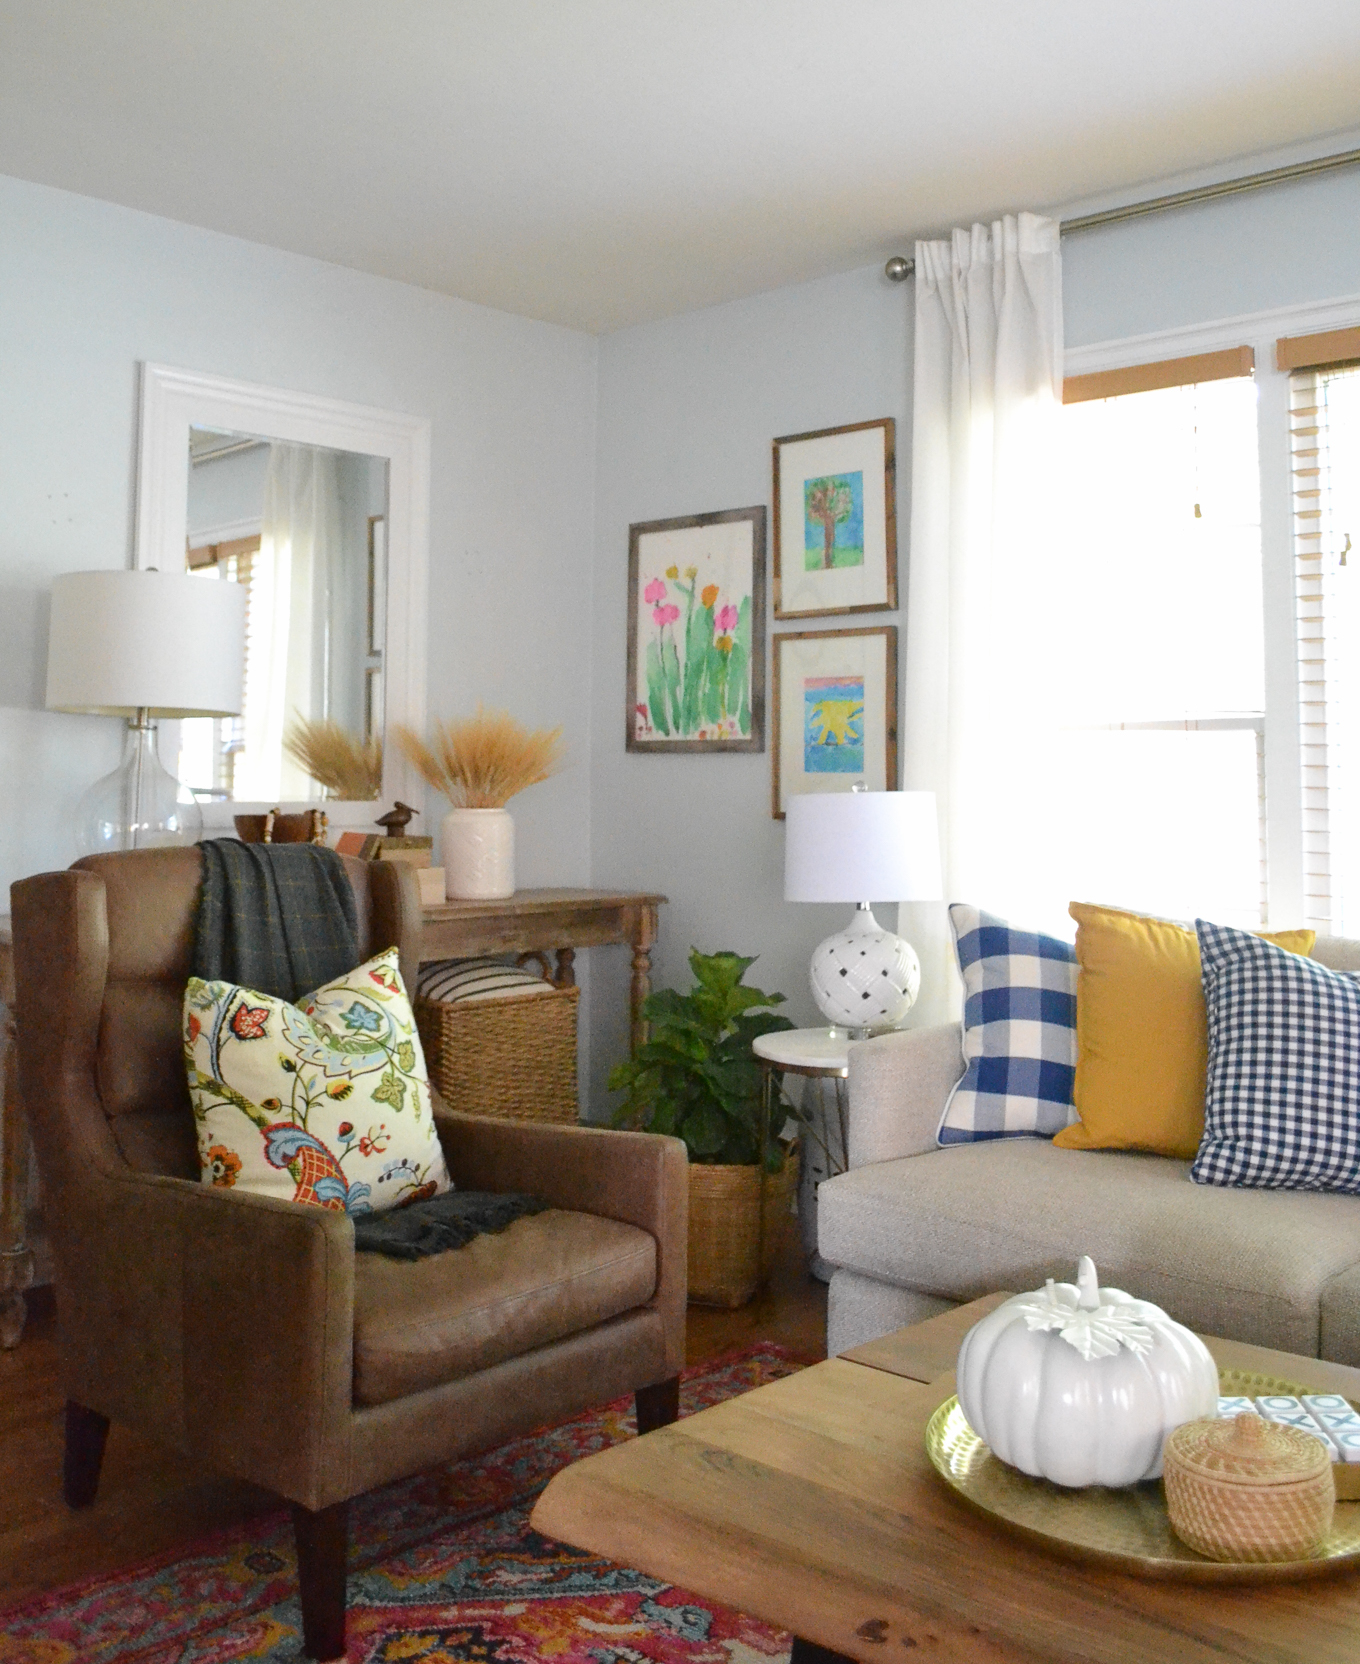 Living Room Theme Ideas: Living Room Decorating Ideas For Fall